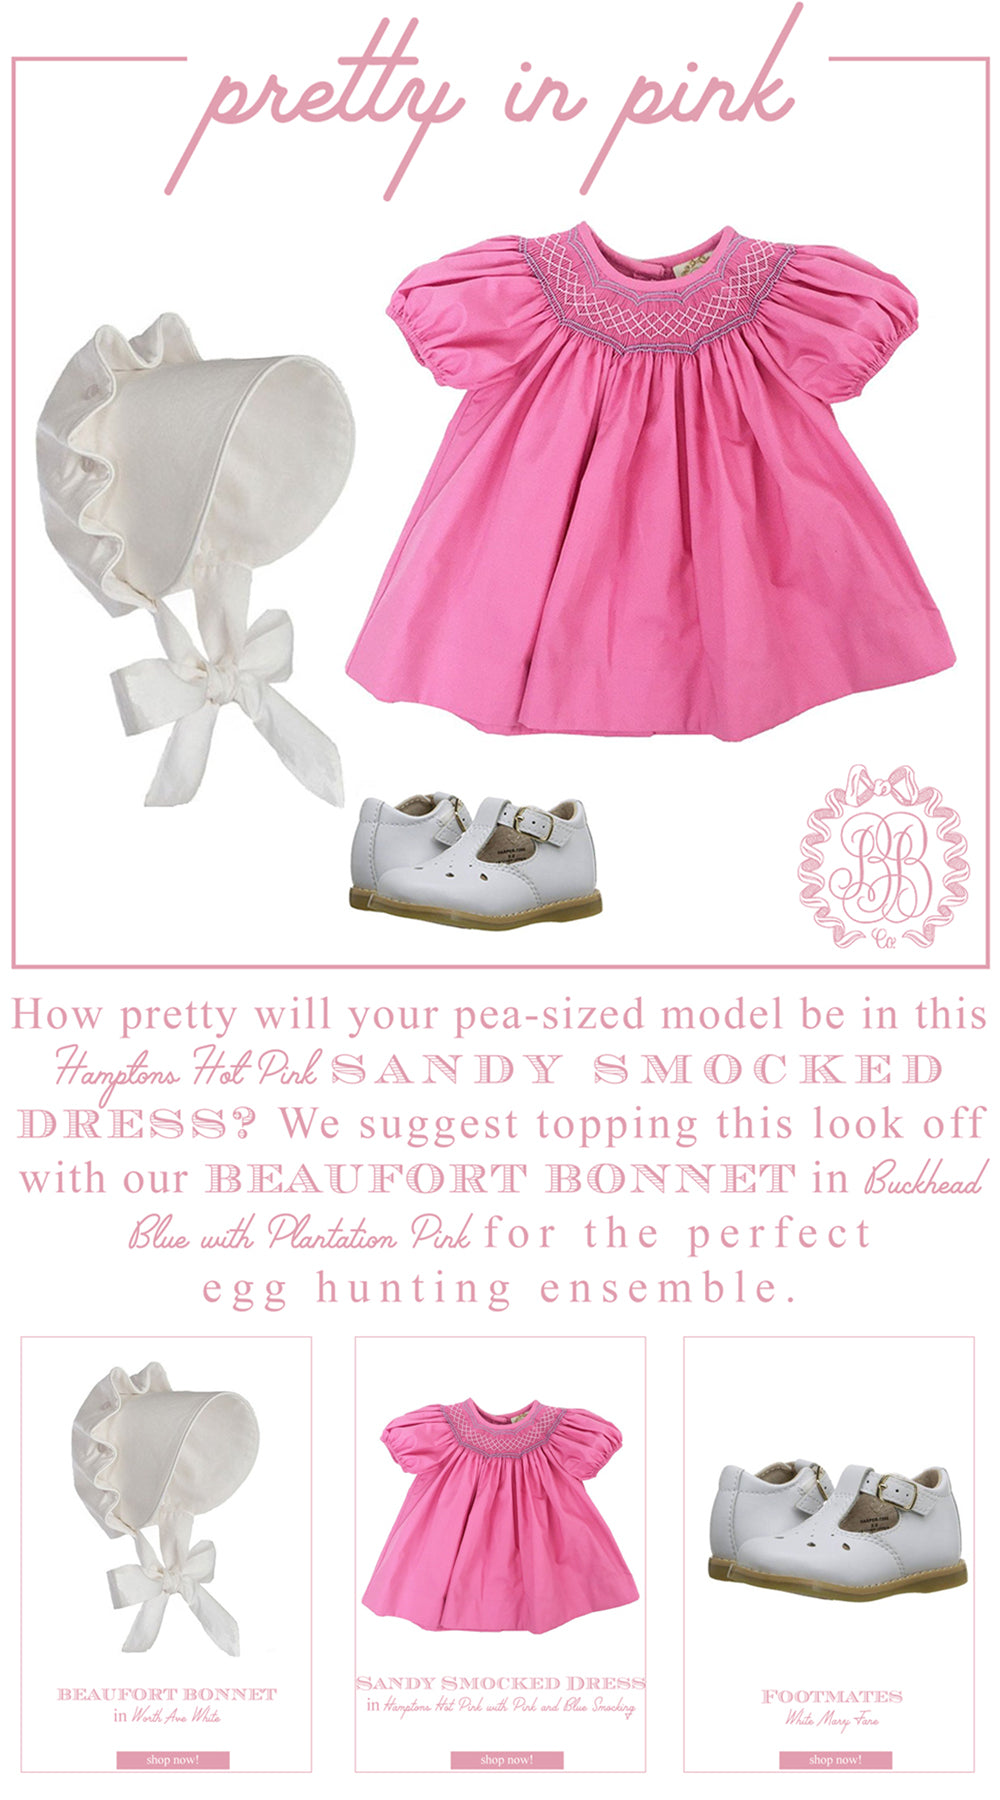 Easter Looks for Little Ladies: Sandy Smocked Dress with Beaufort Bonnet and Mary Janes